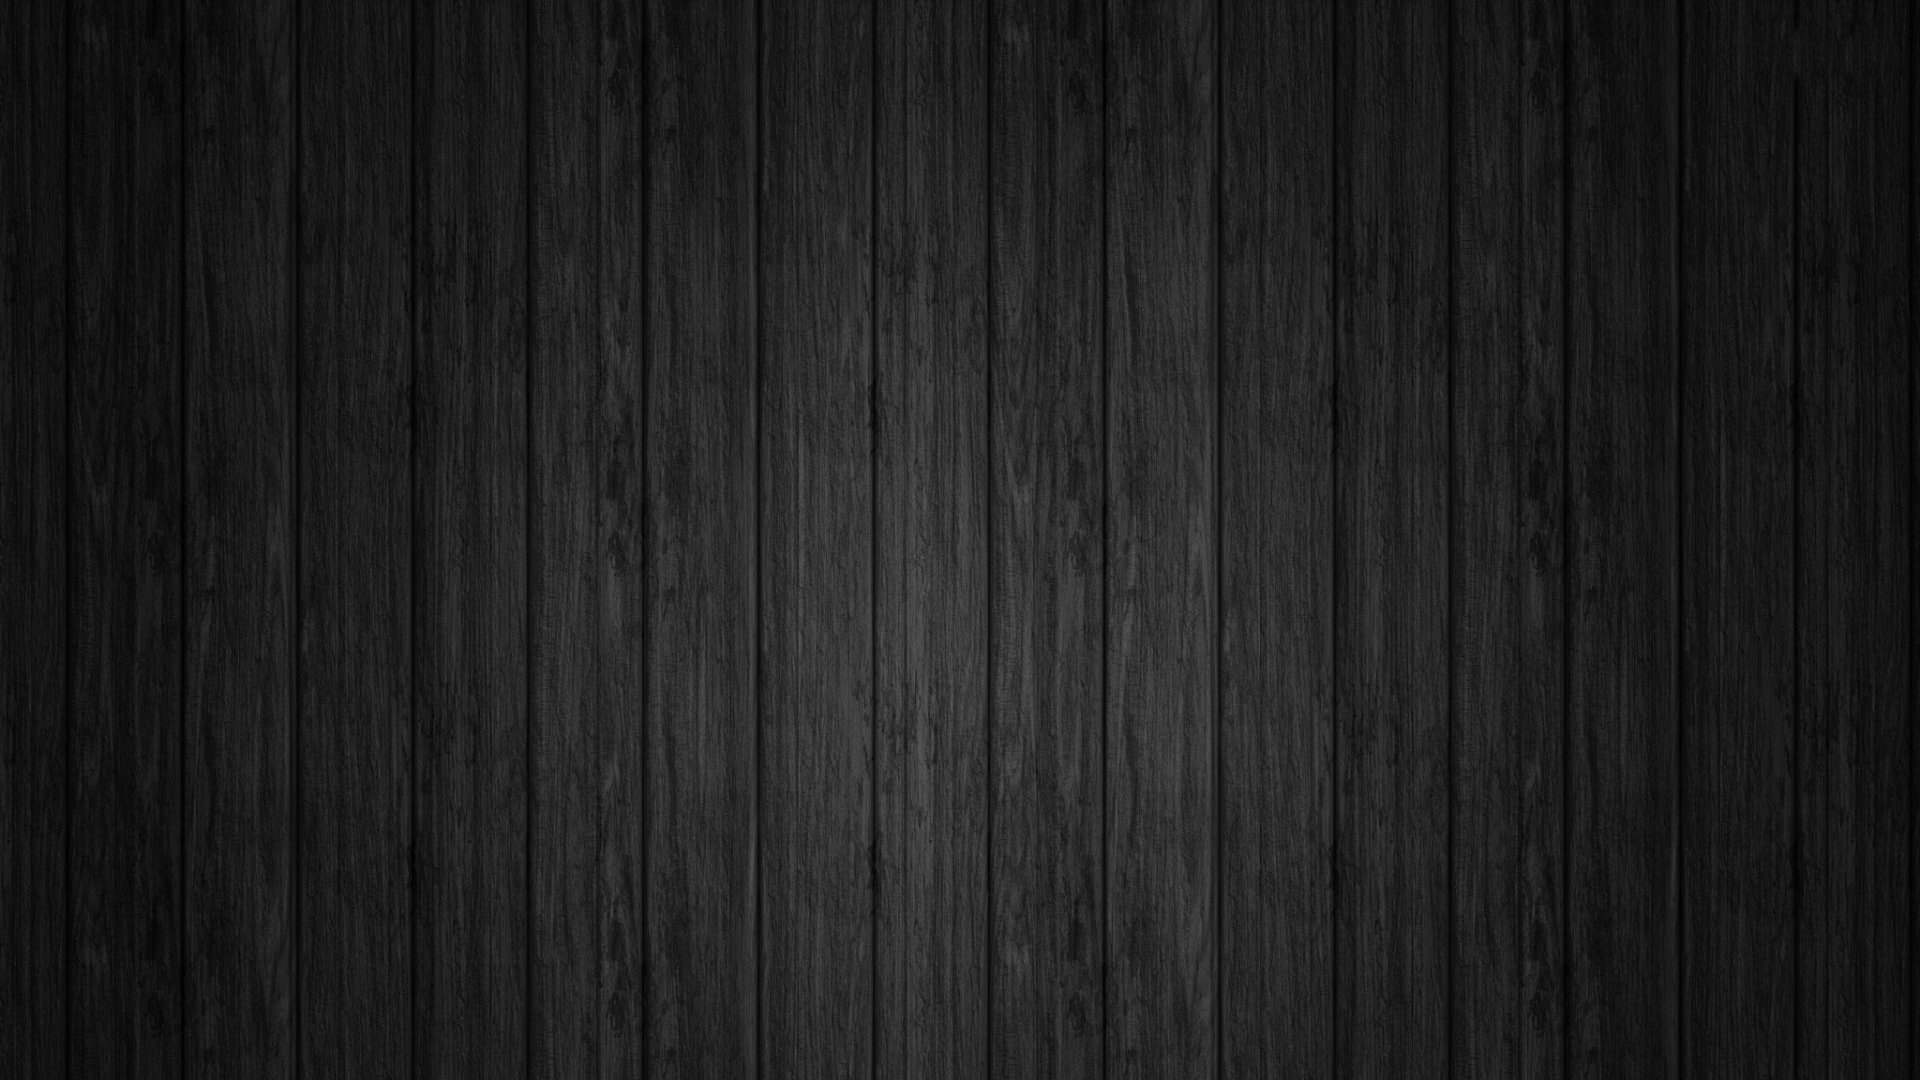 leather-texture-black-wallpaper-abstract-wooden-textured-wallpapers